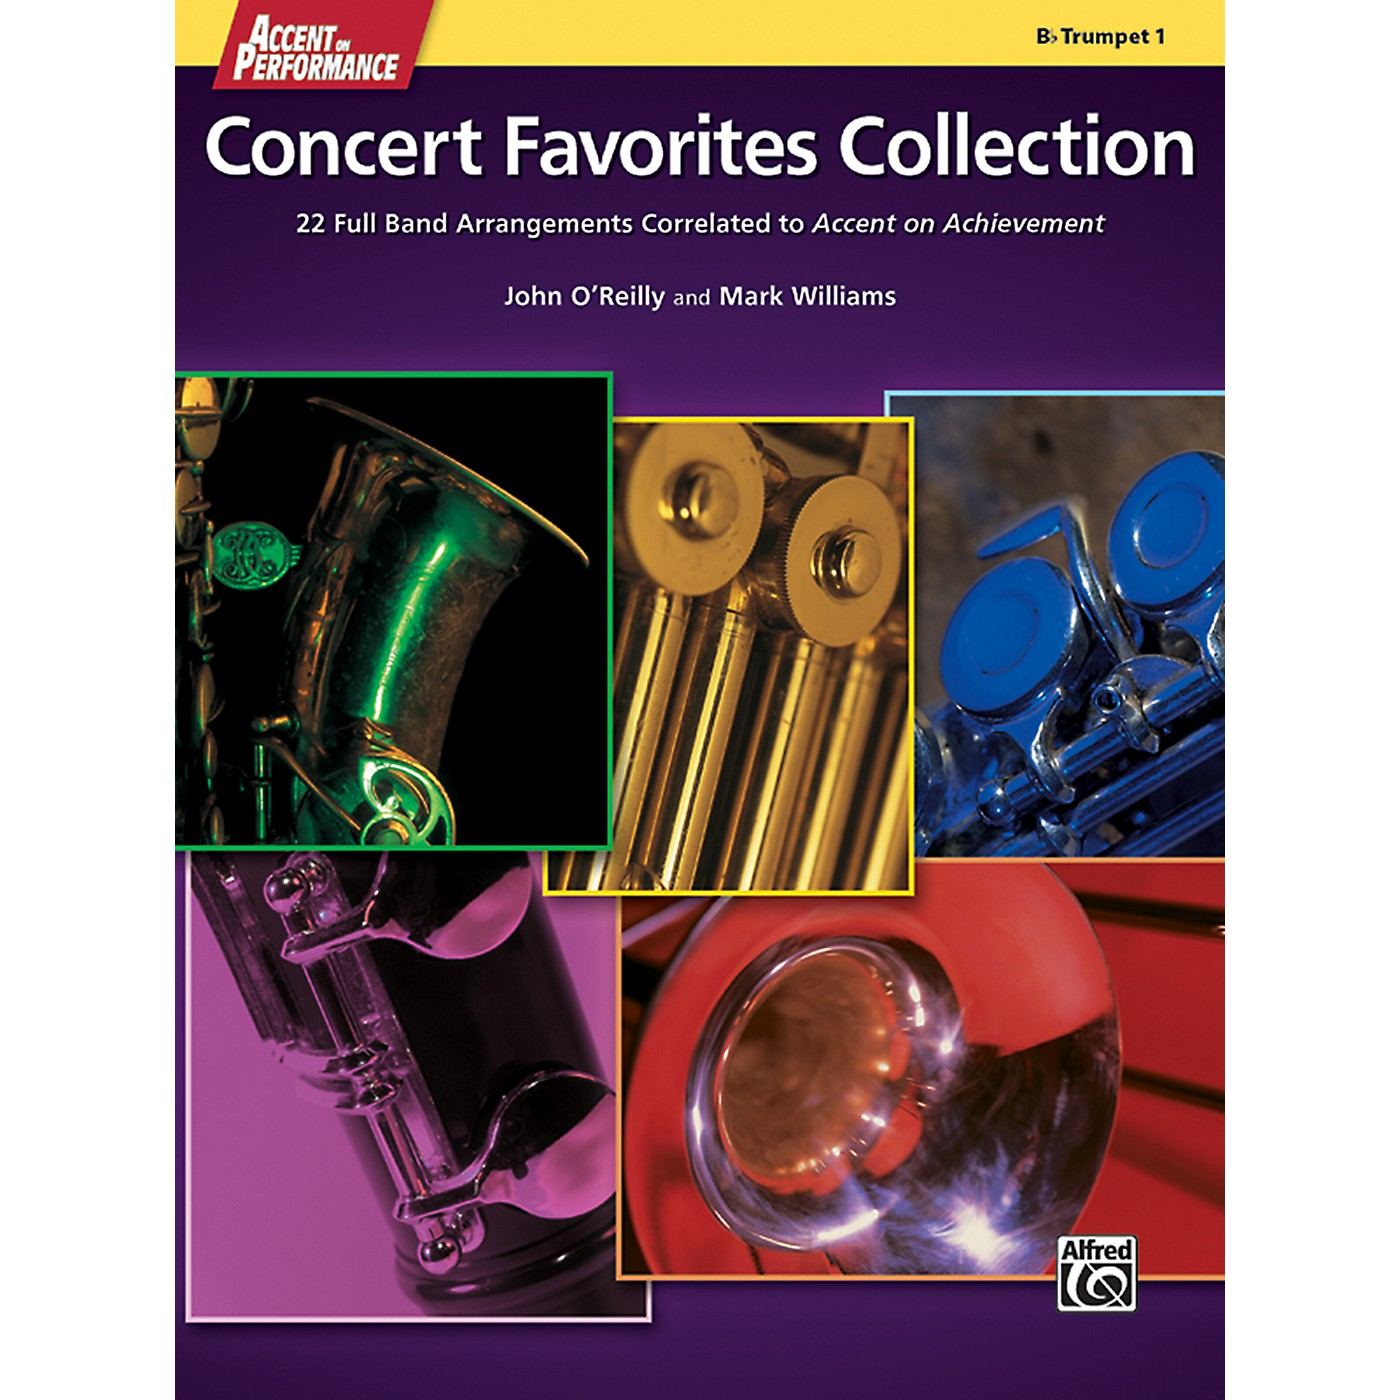 Alfred Accent on Performance Concert Favorites Collection Trumpet 1 Book thumbnail